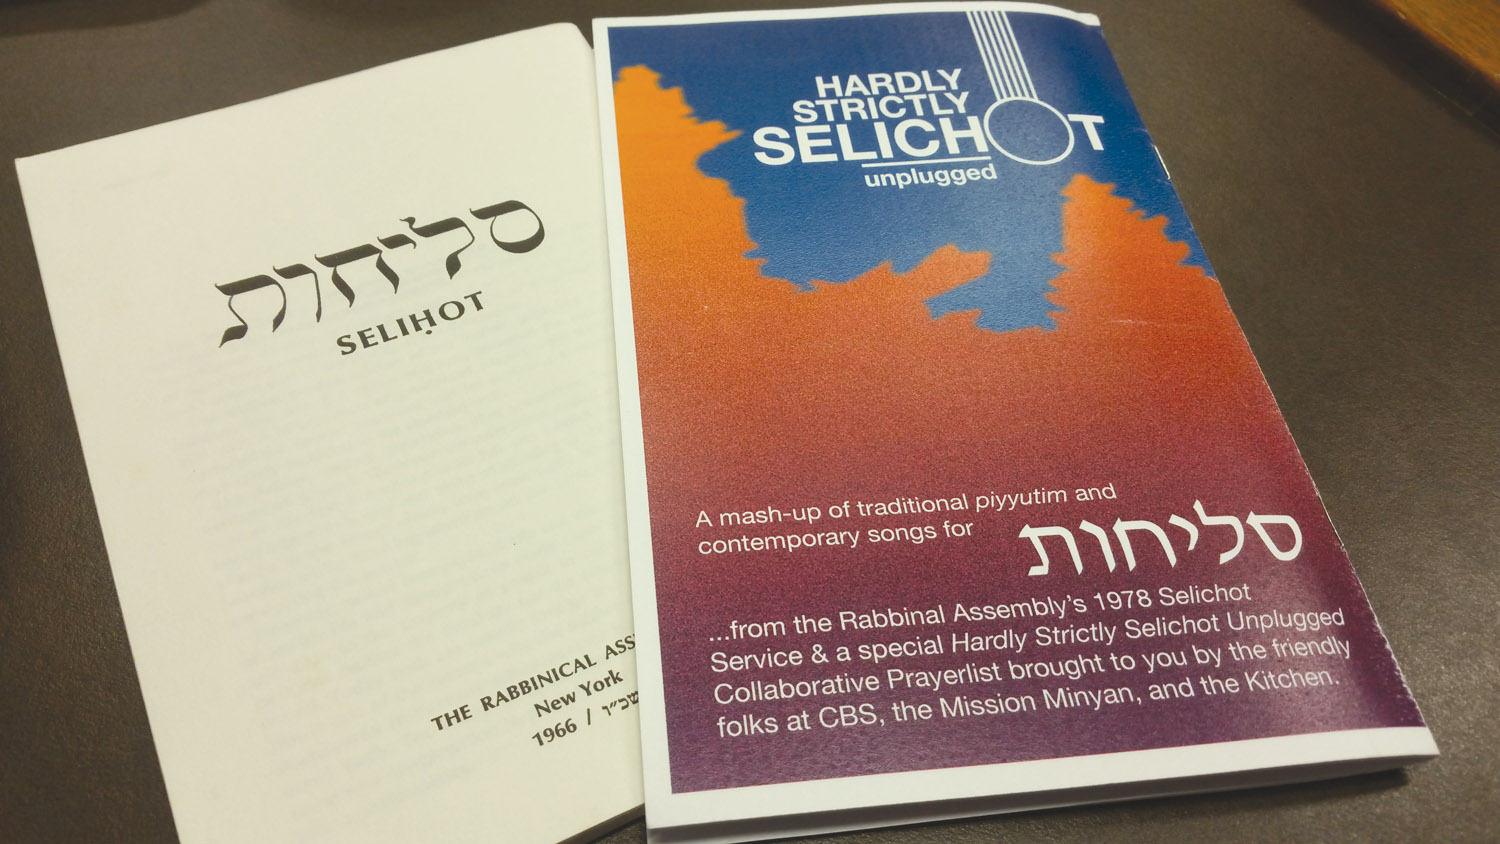 """One pamphlet is on old white paper, simply says """"Selichot"""" on the cover. the other is more colorful, says """"Hardly Strictly Selichot"""""""